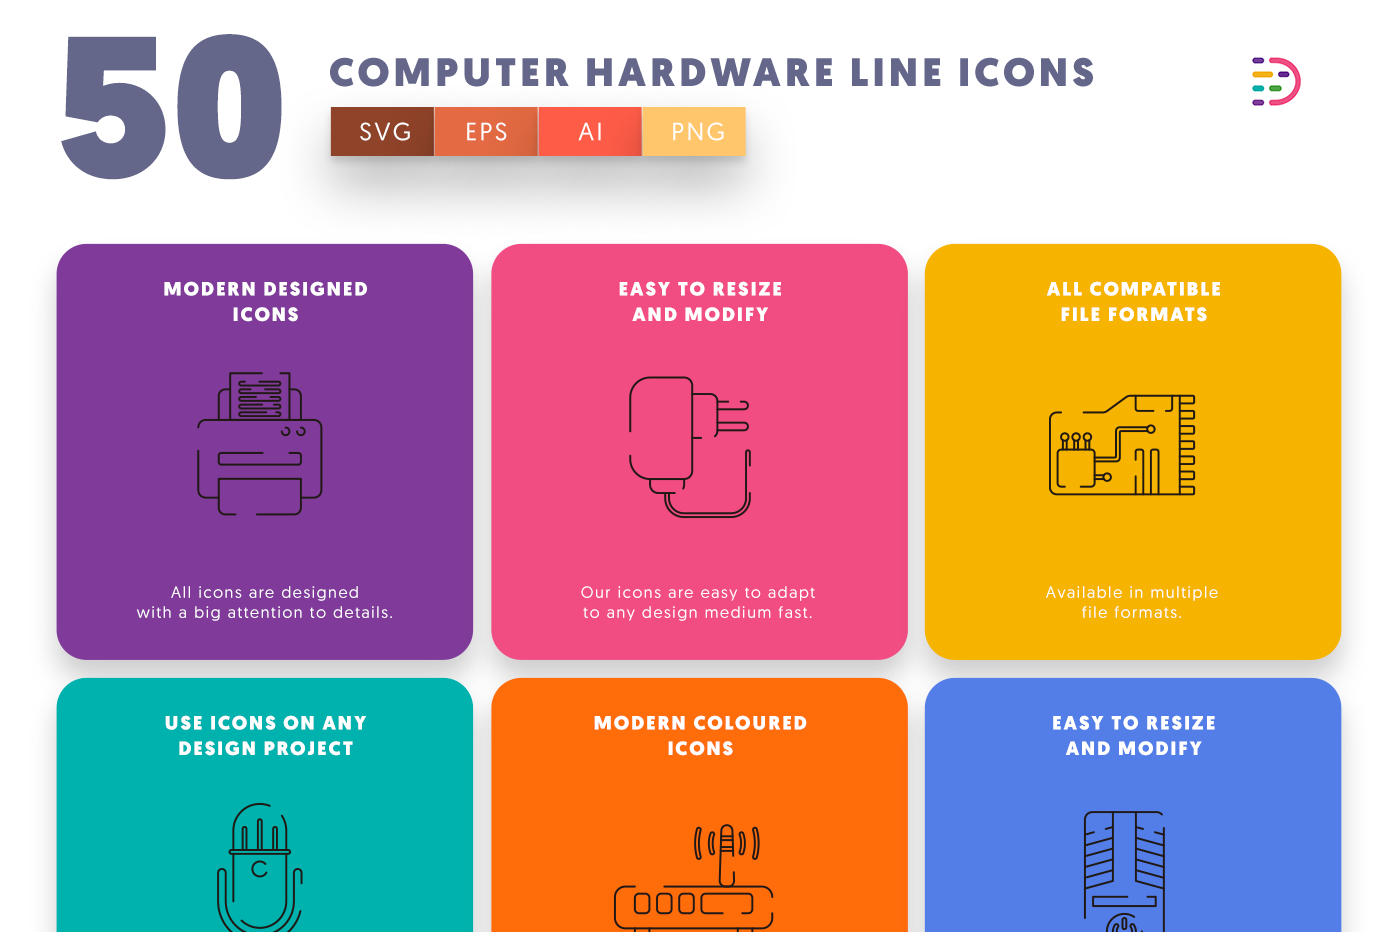 50 Computer Hardware Line Icons with colored backgrounds